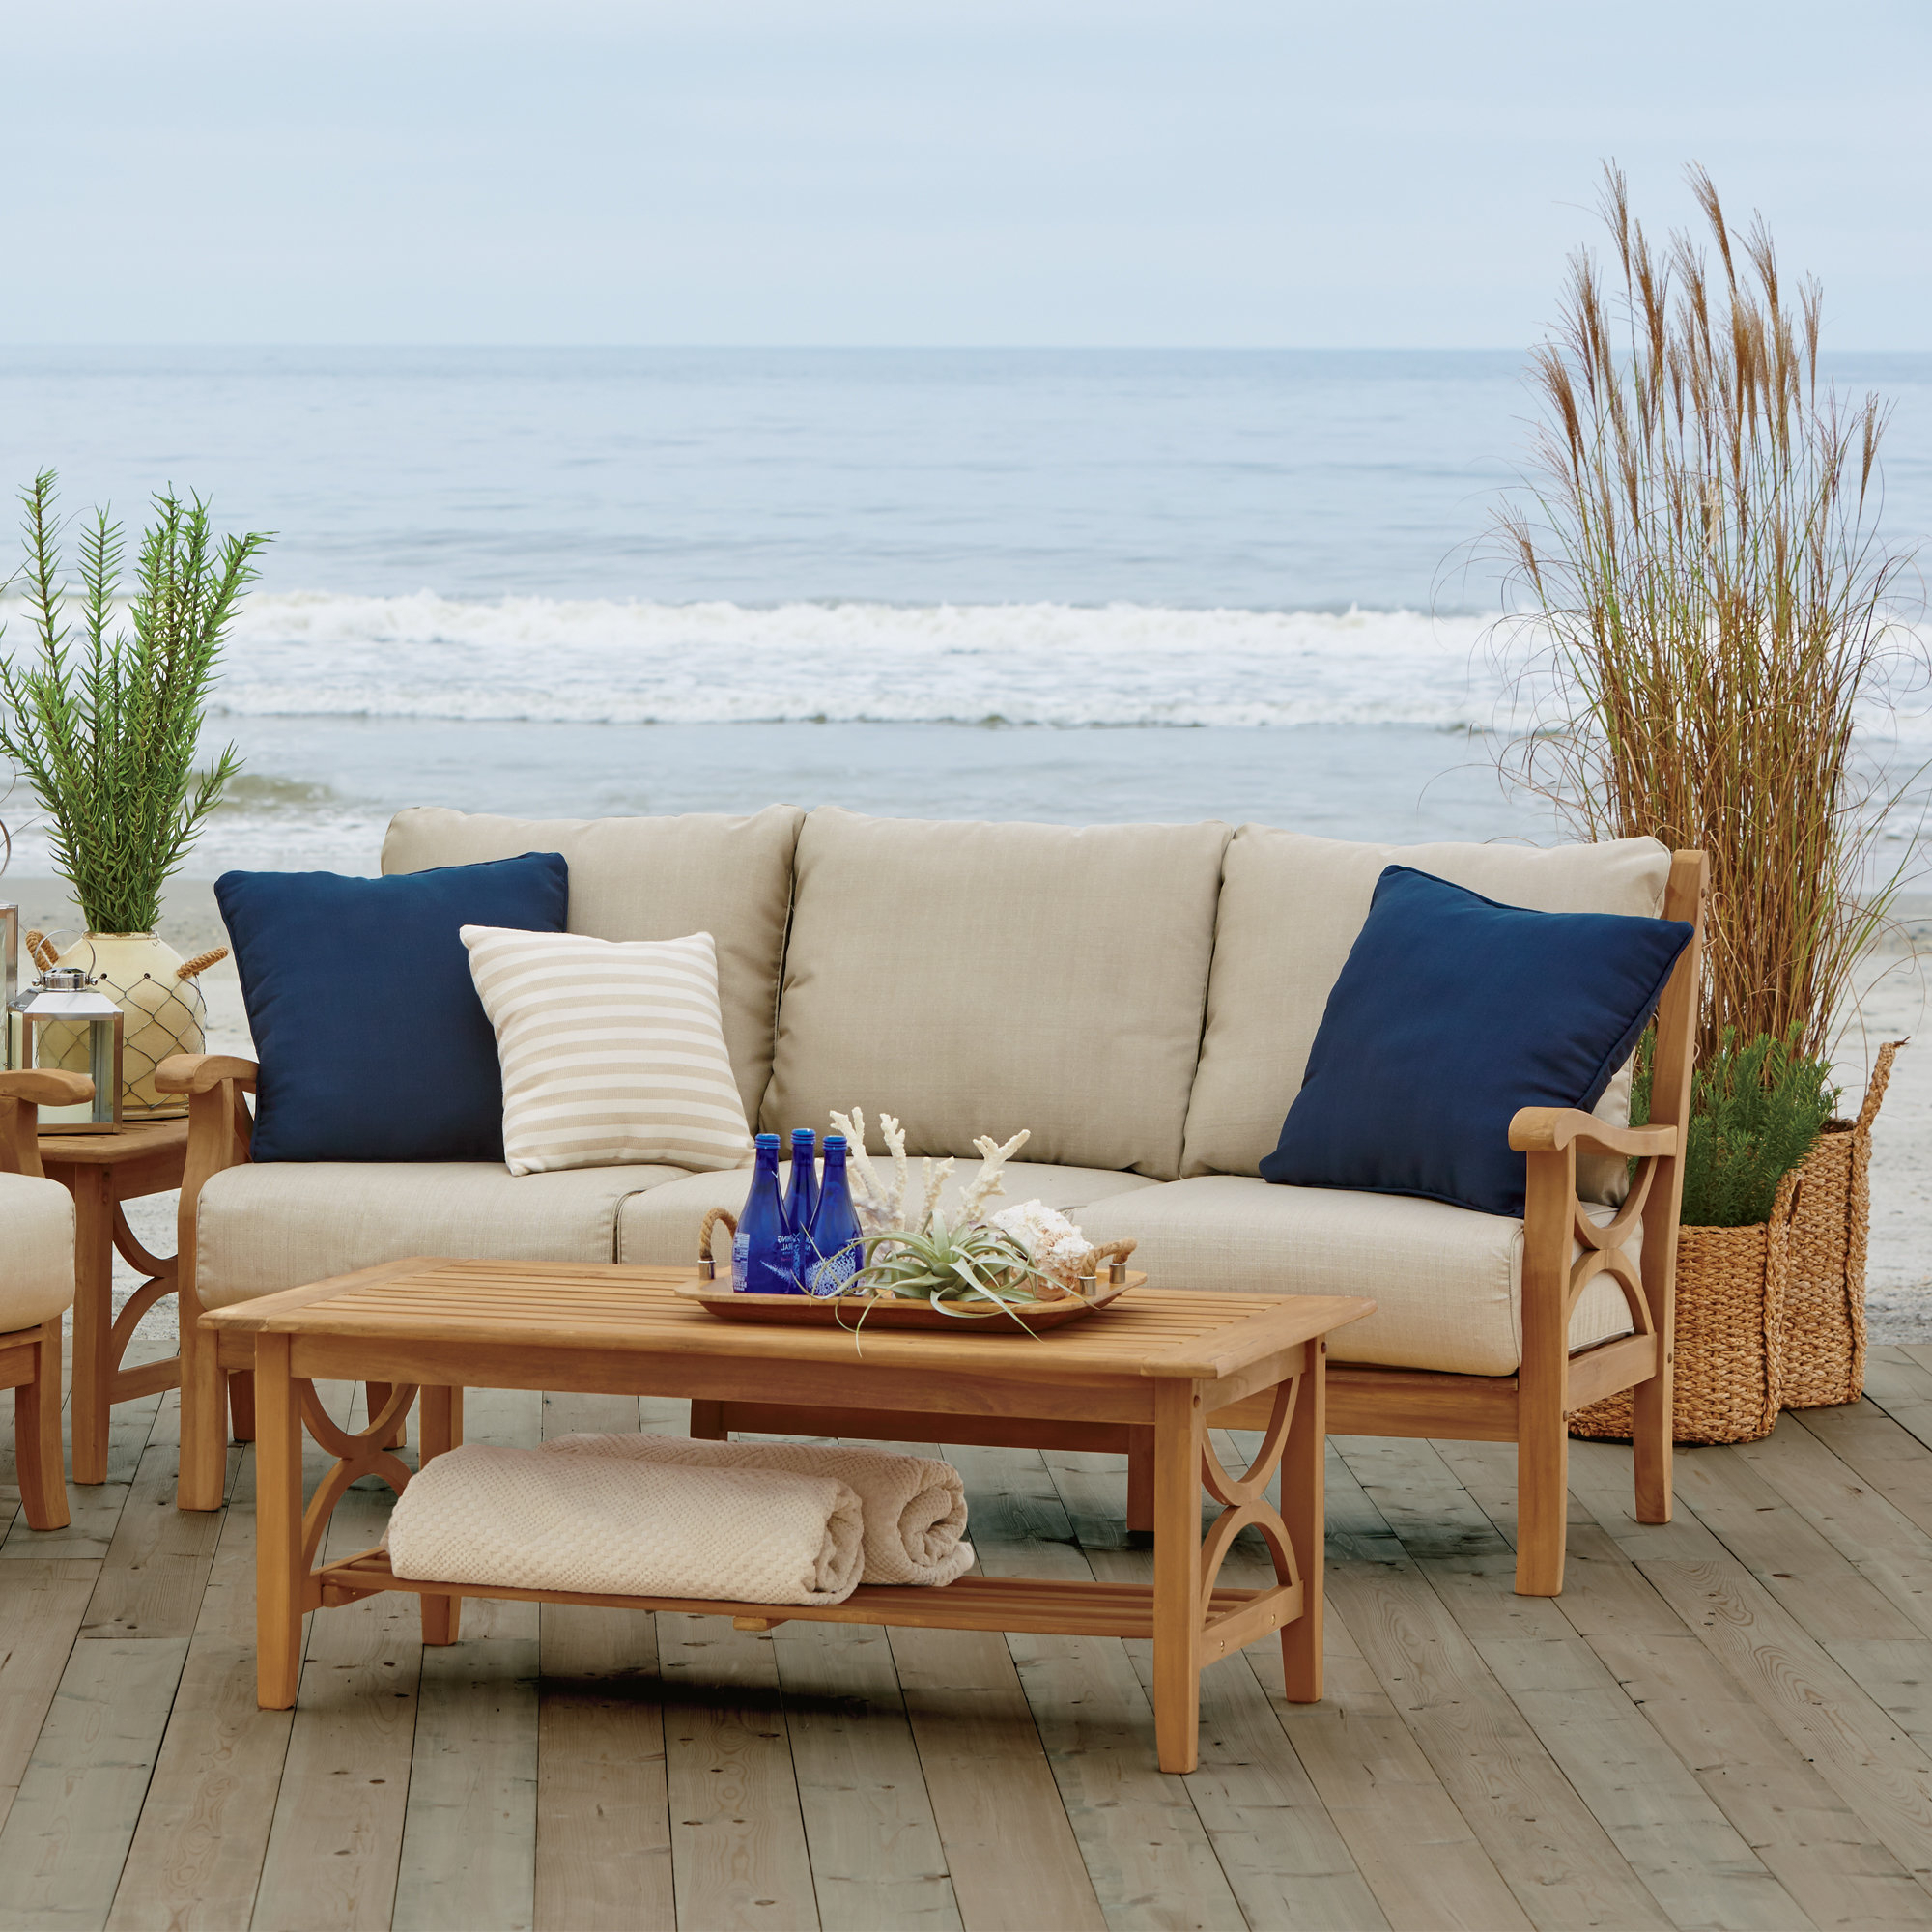 Brunswick Teak Patio Sofa With Cushions Within Most Current Summerton Teak Patio Sofas With Cushions (View 8 of 20)